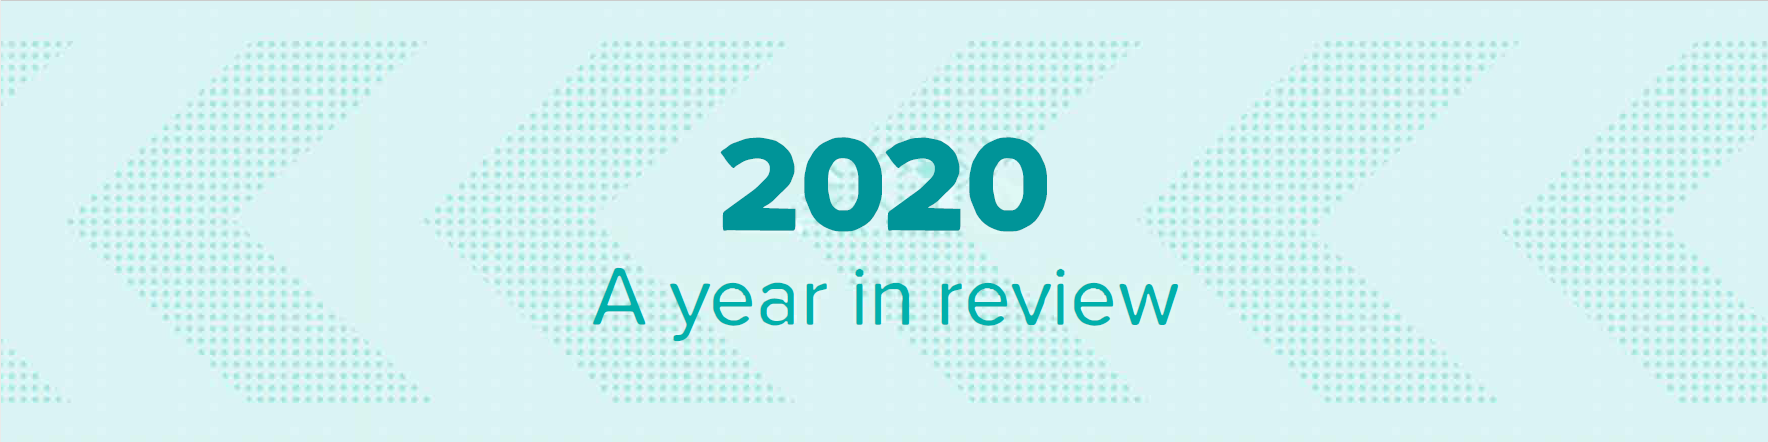 2020 - A Year in Review at Roomex